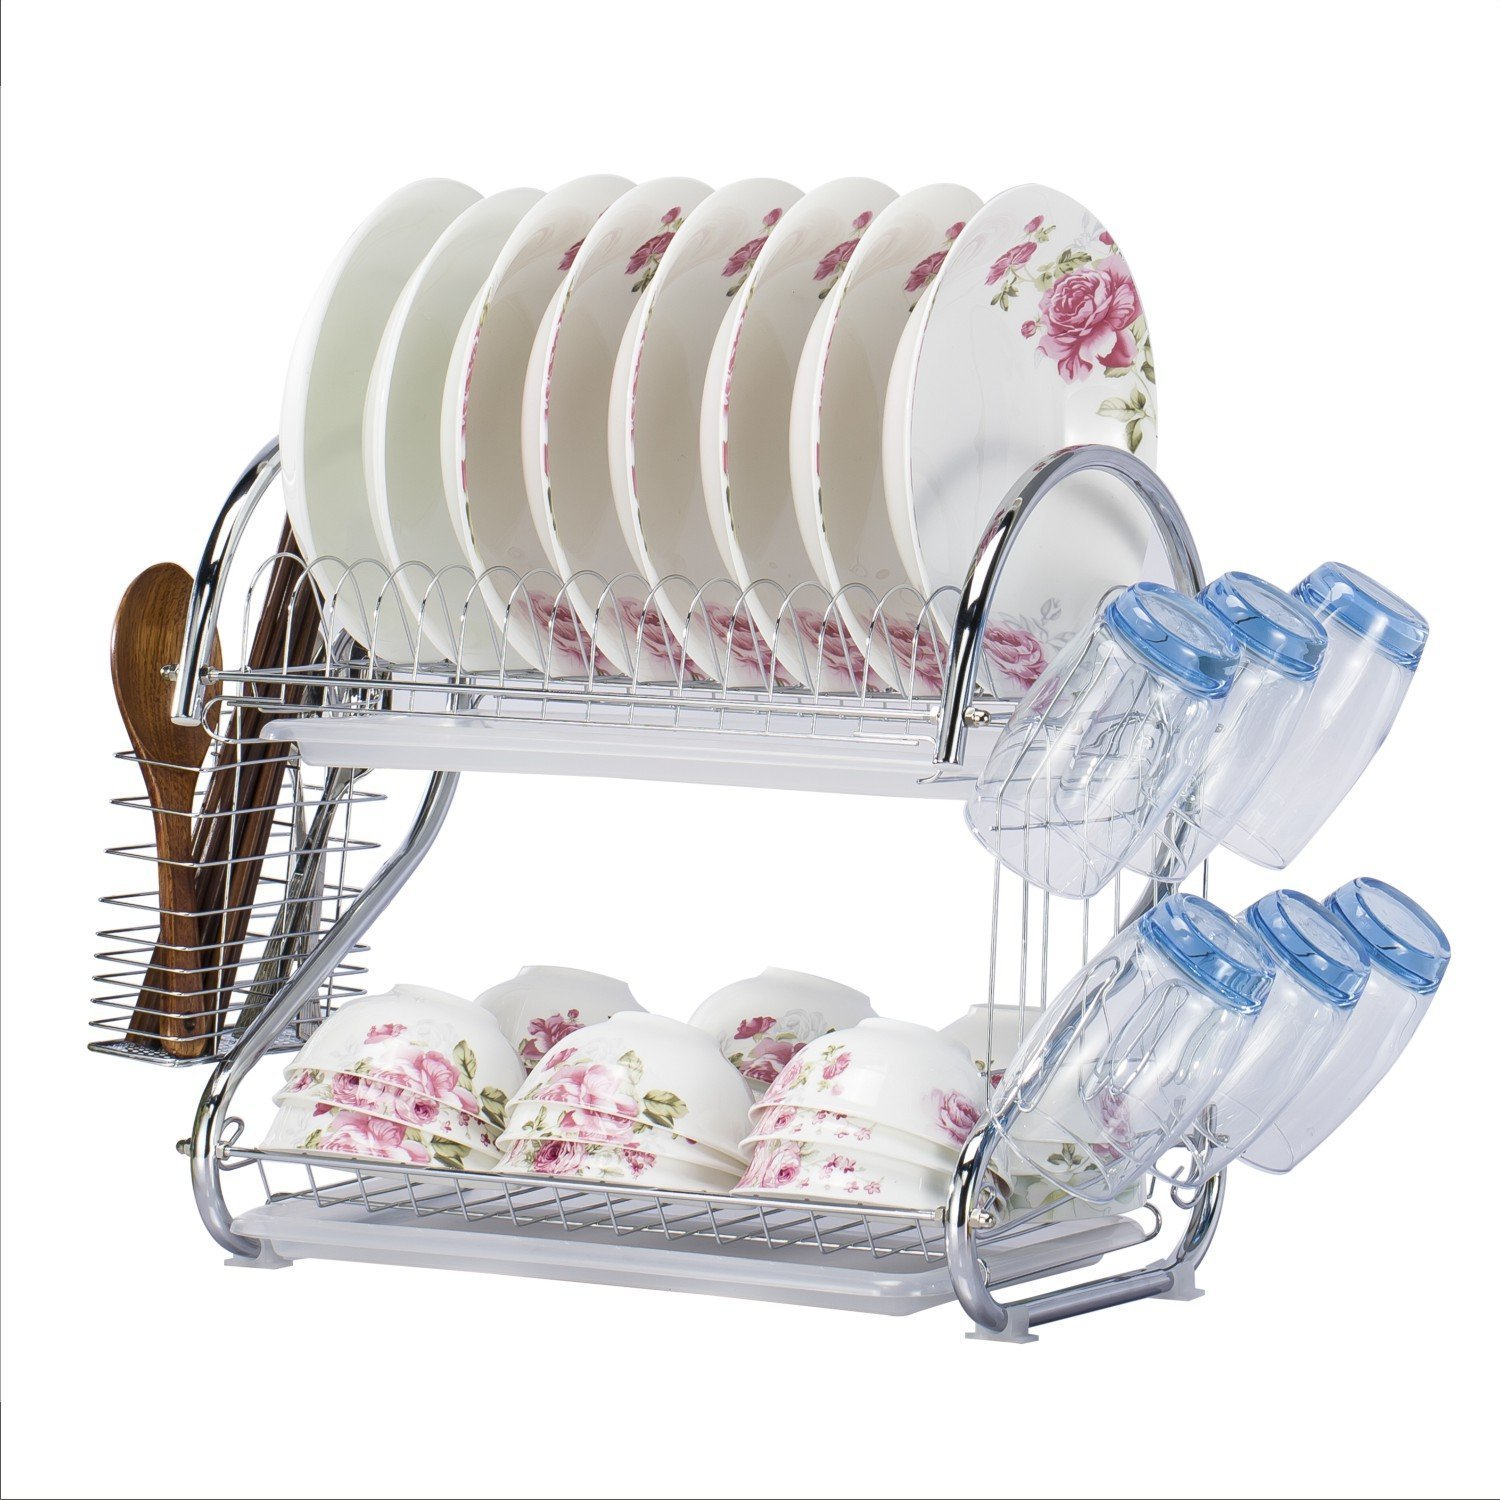 WORTOOL Dish Drying Rack 2 Tier Dish Rack and Drain Board, 21 inch 'S' Shape Double Draining Tray Design Effectively Prevent Cross-Contamination. by WORTOOL